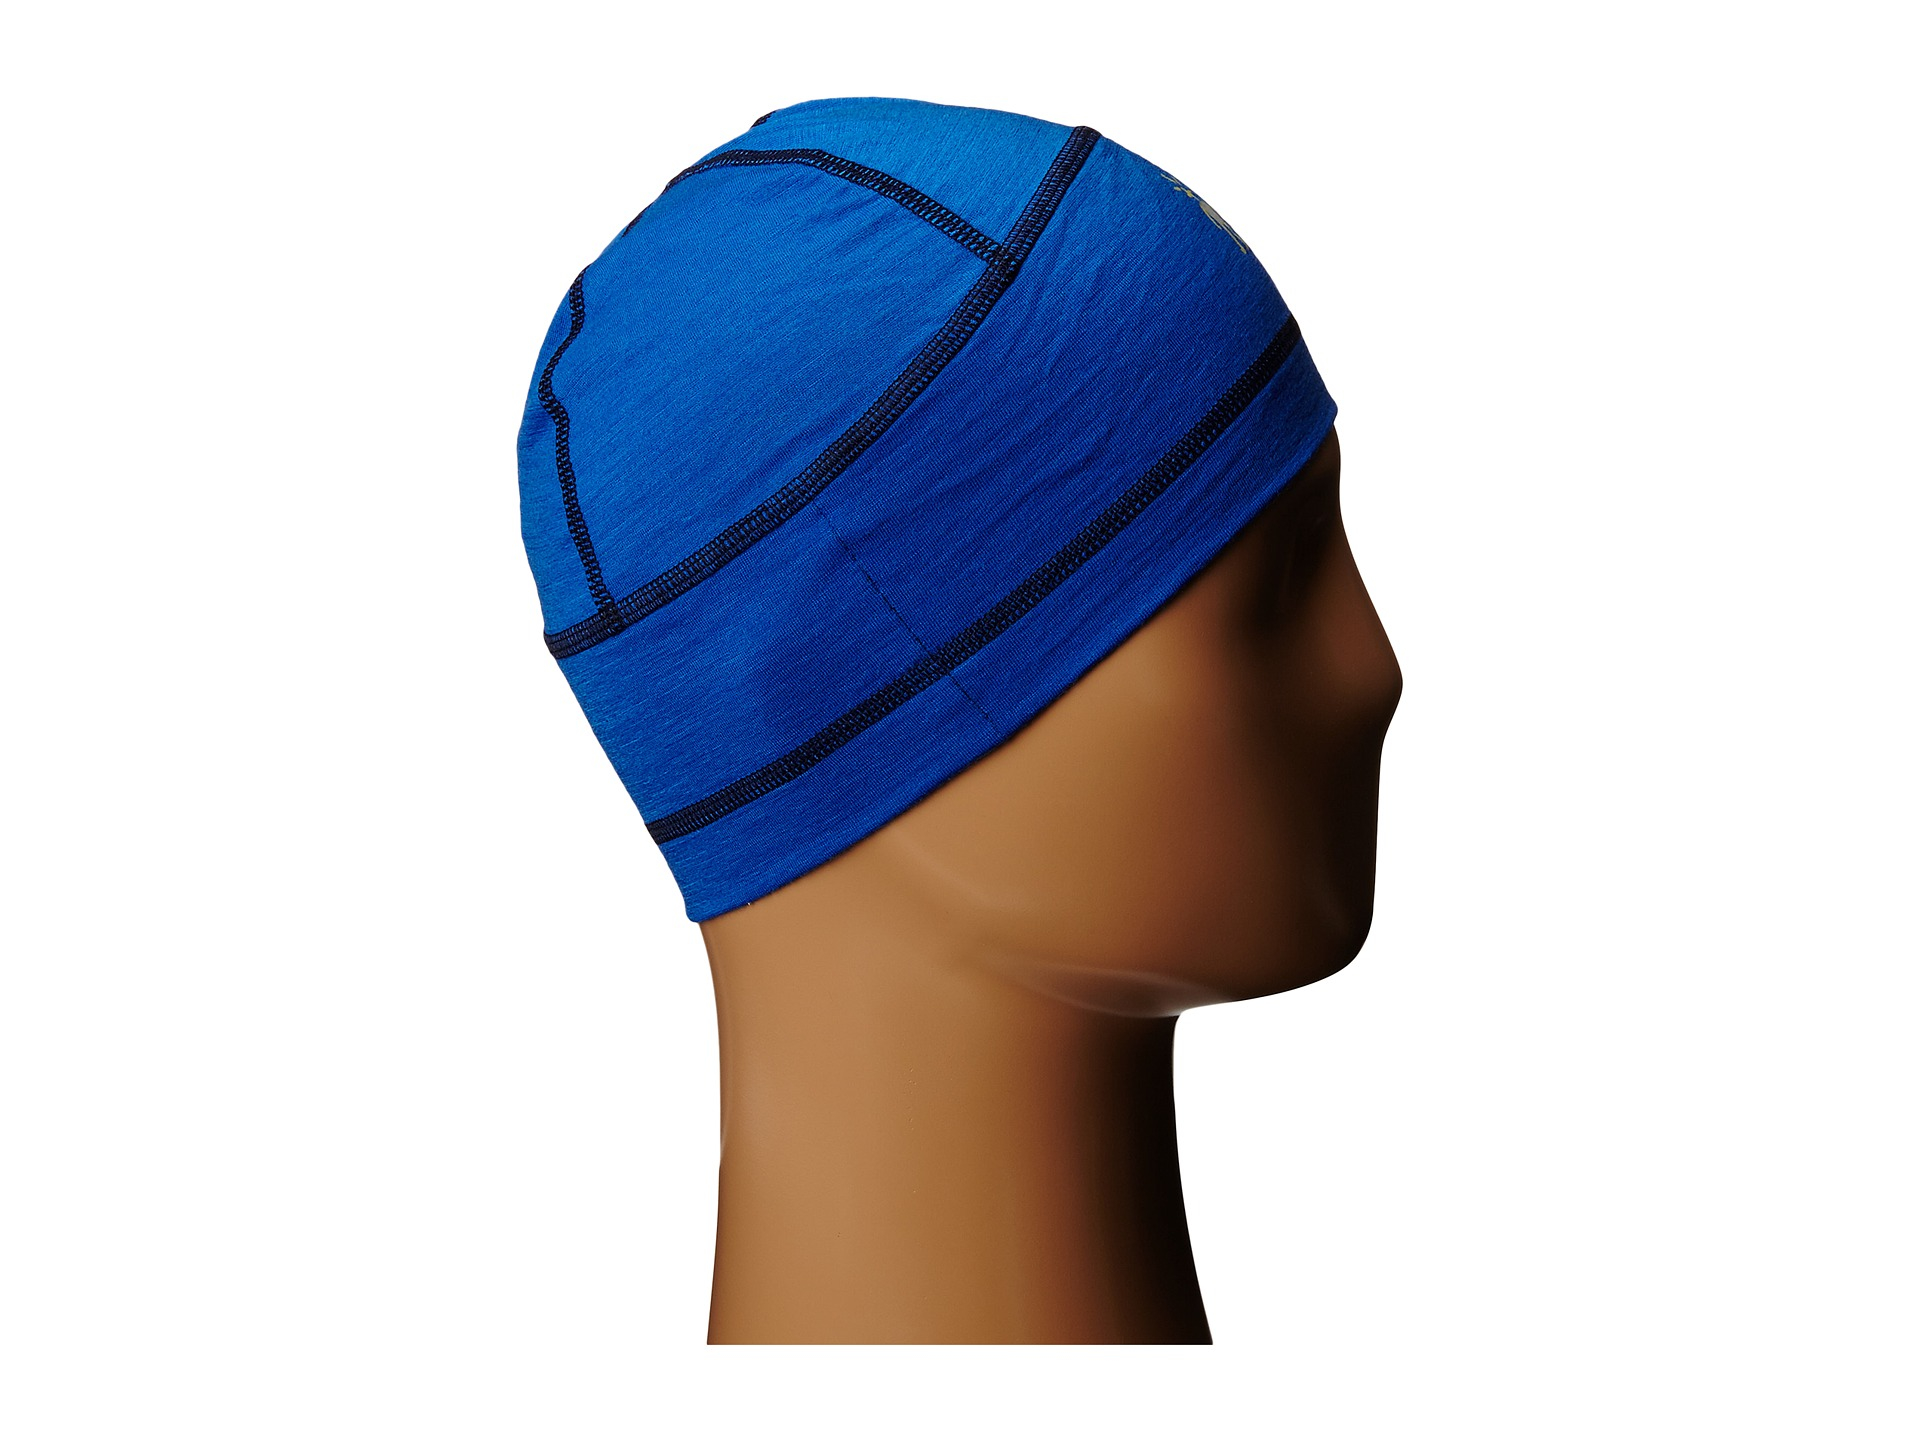 e75244c79f5 ... info for Lyst - Smartwool Phd Training Beanie in Blue 0d497 5ebca ...